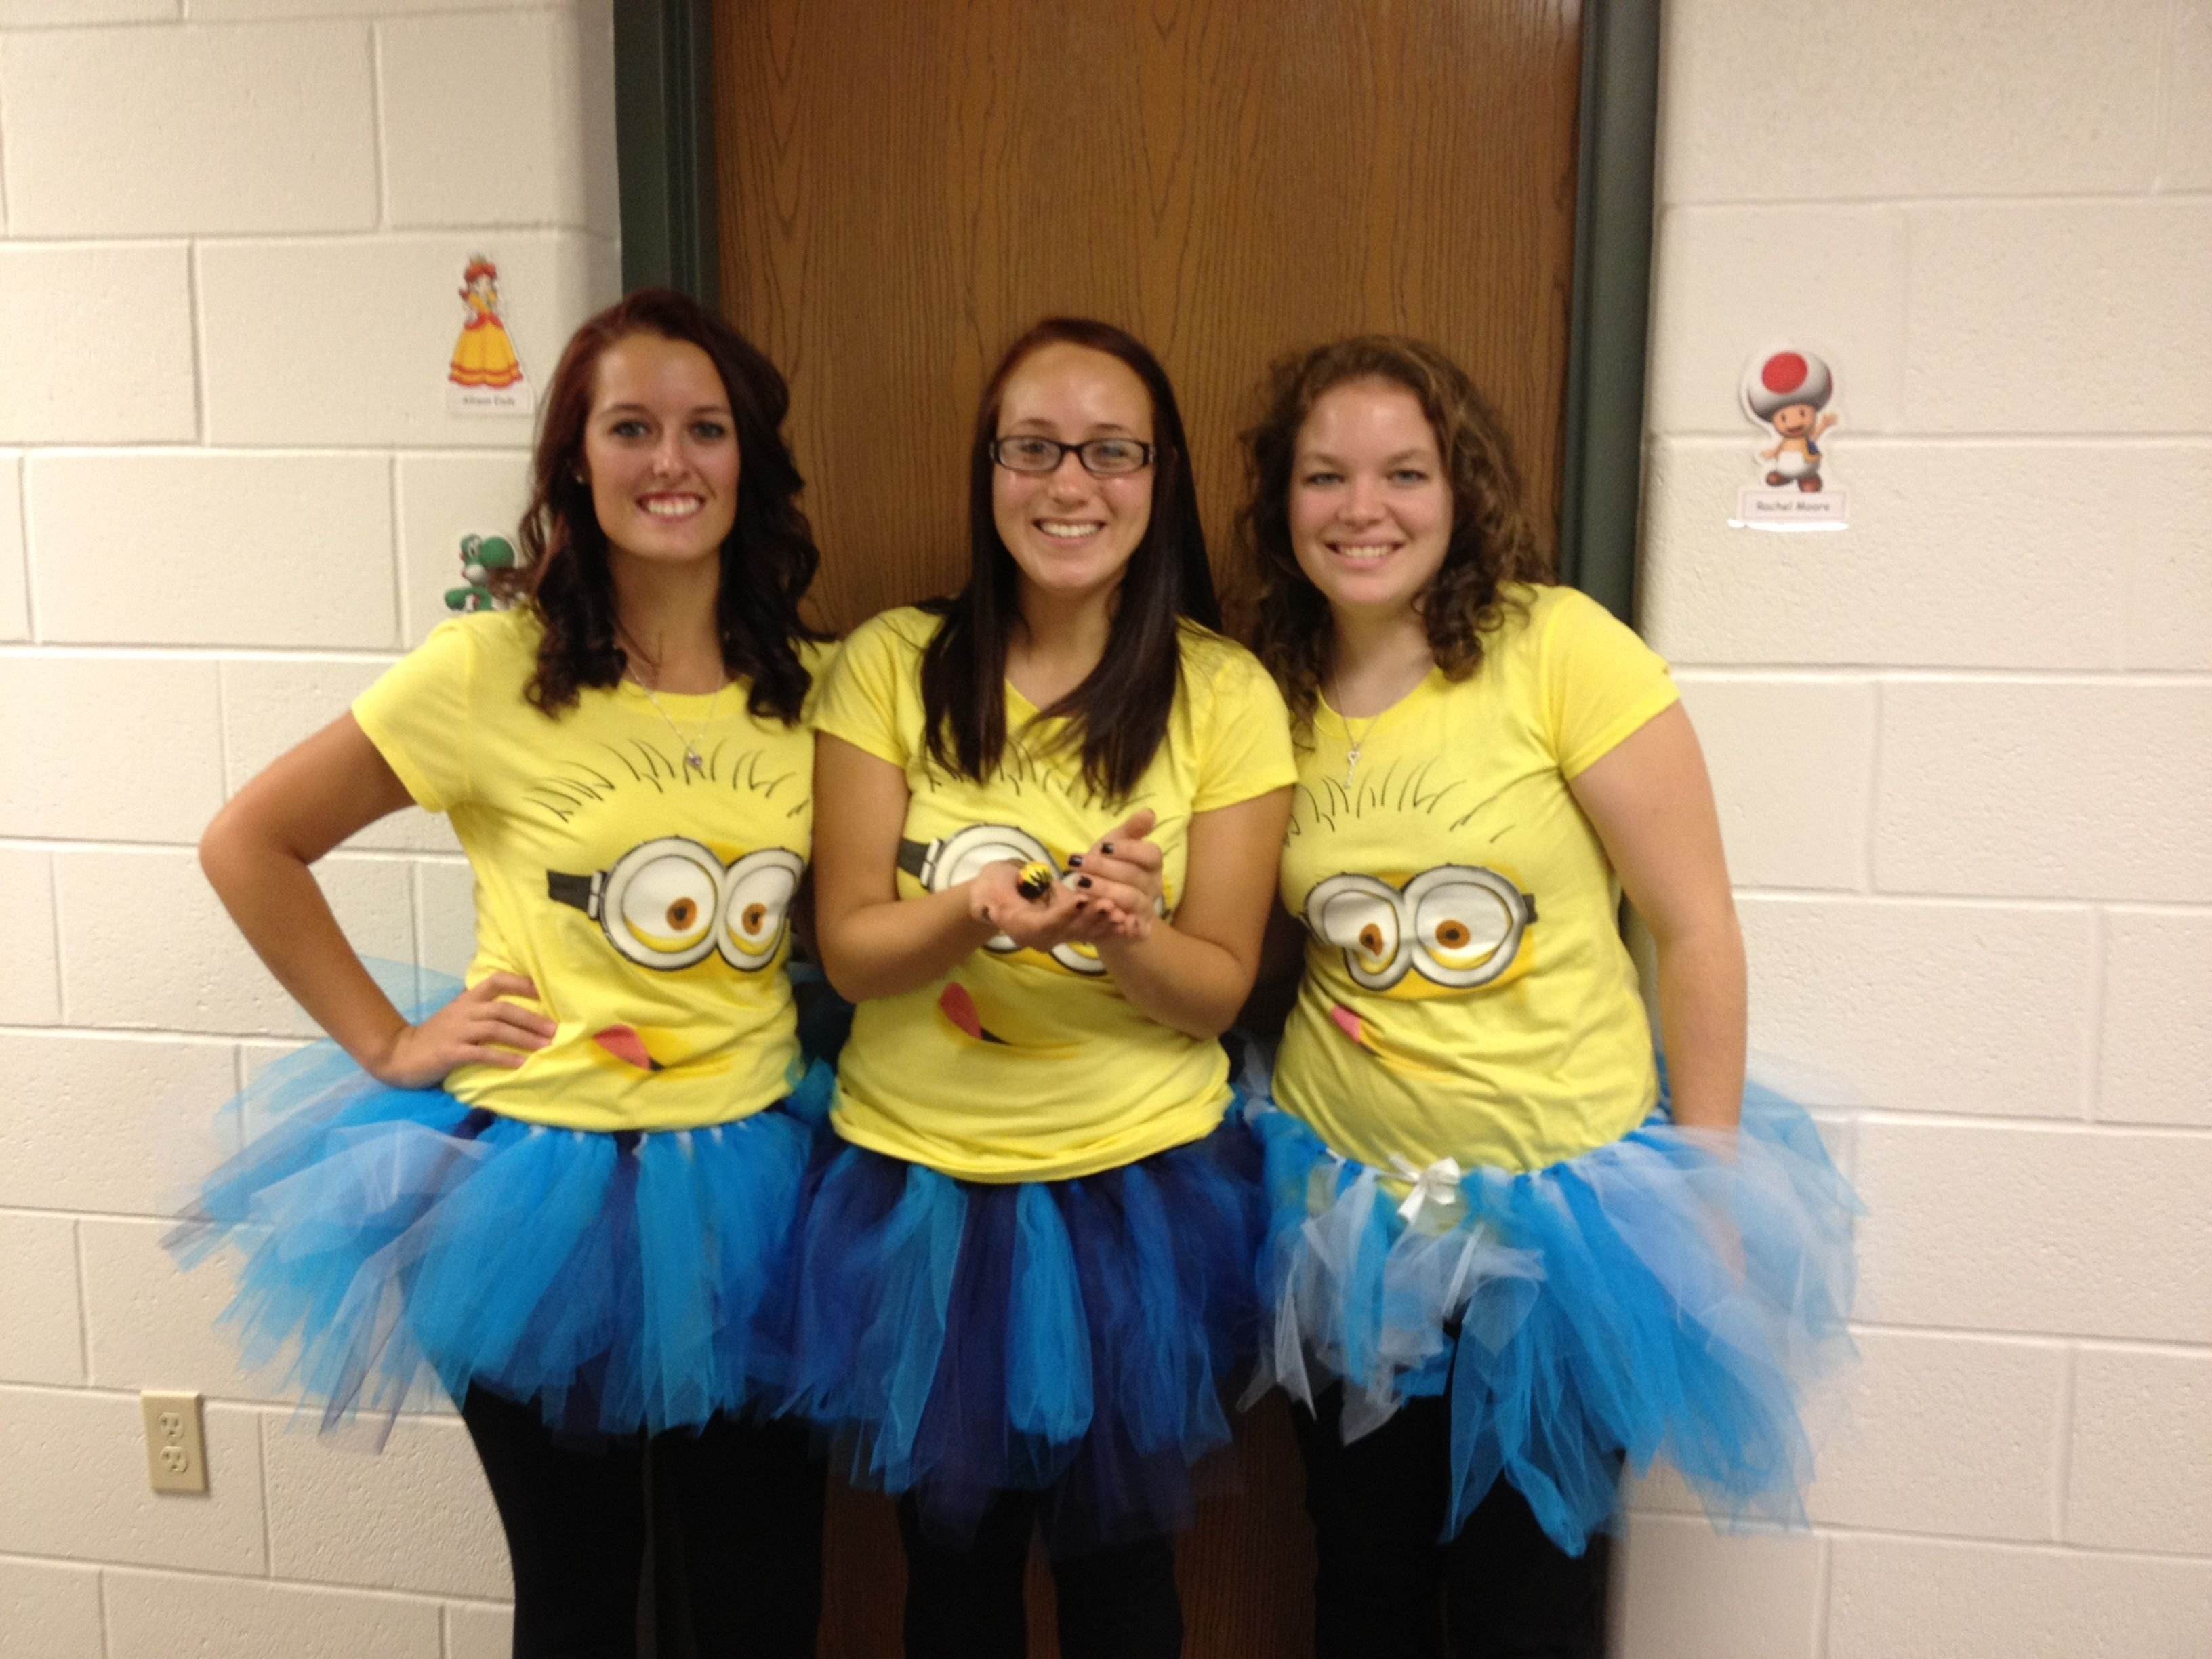 10 Awesome Costume Ideas For Three Girls minions costume for halloween for our three girls ages 19mo 7 10